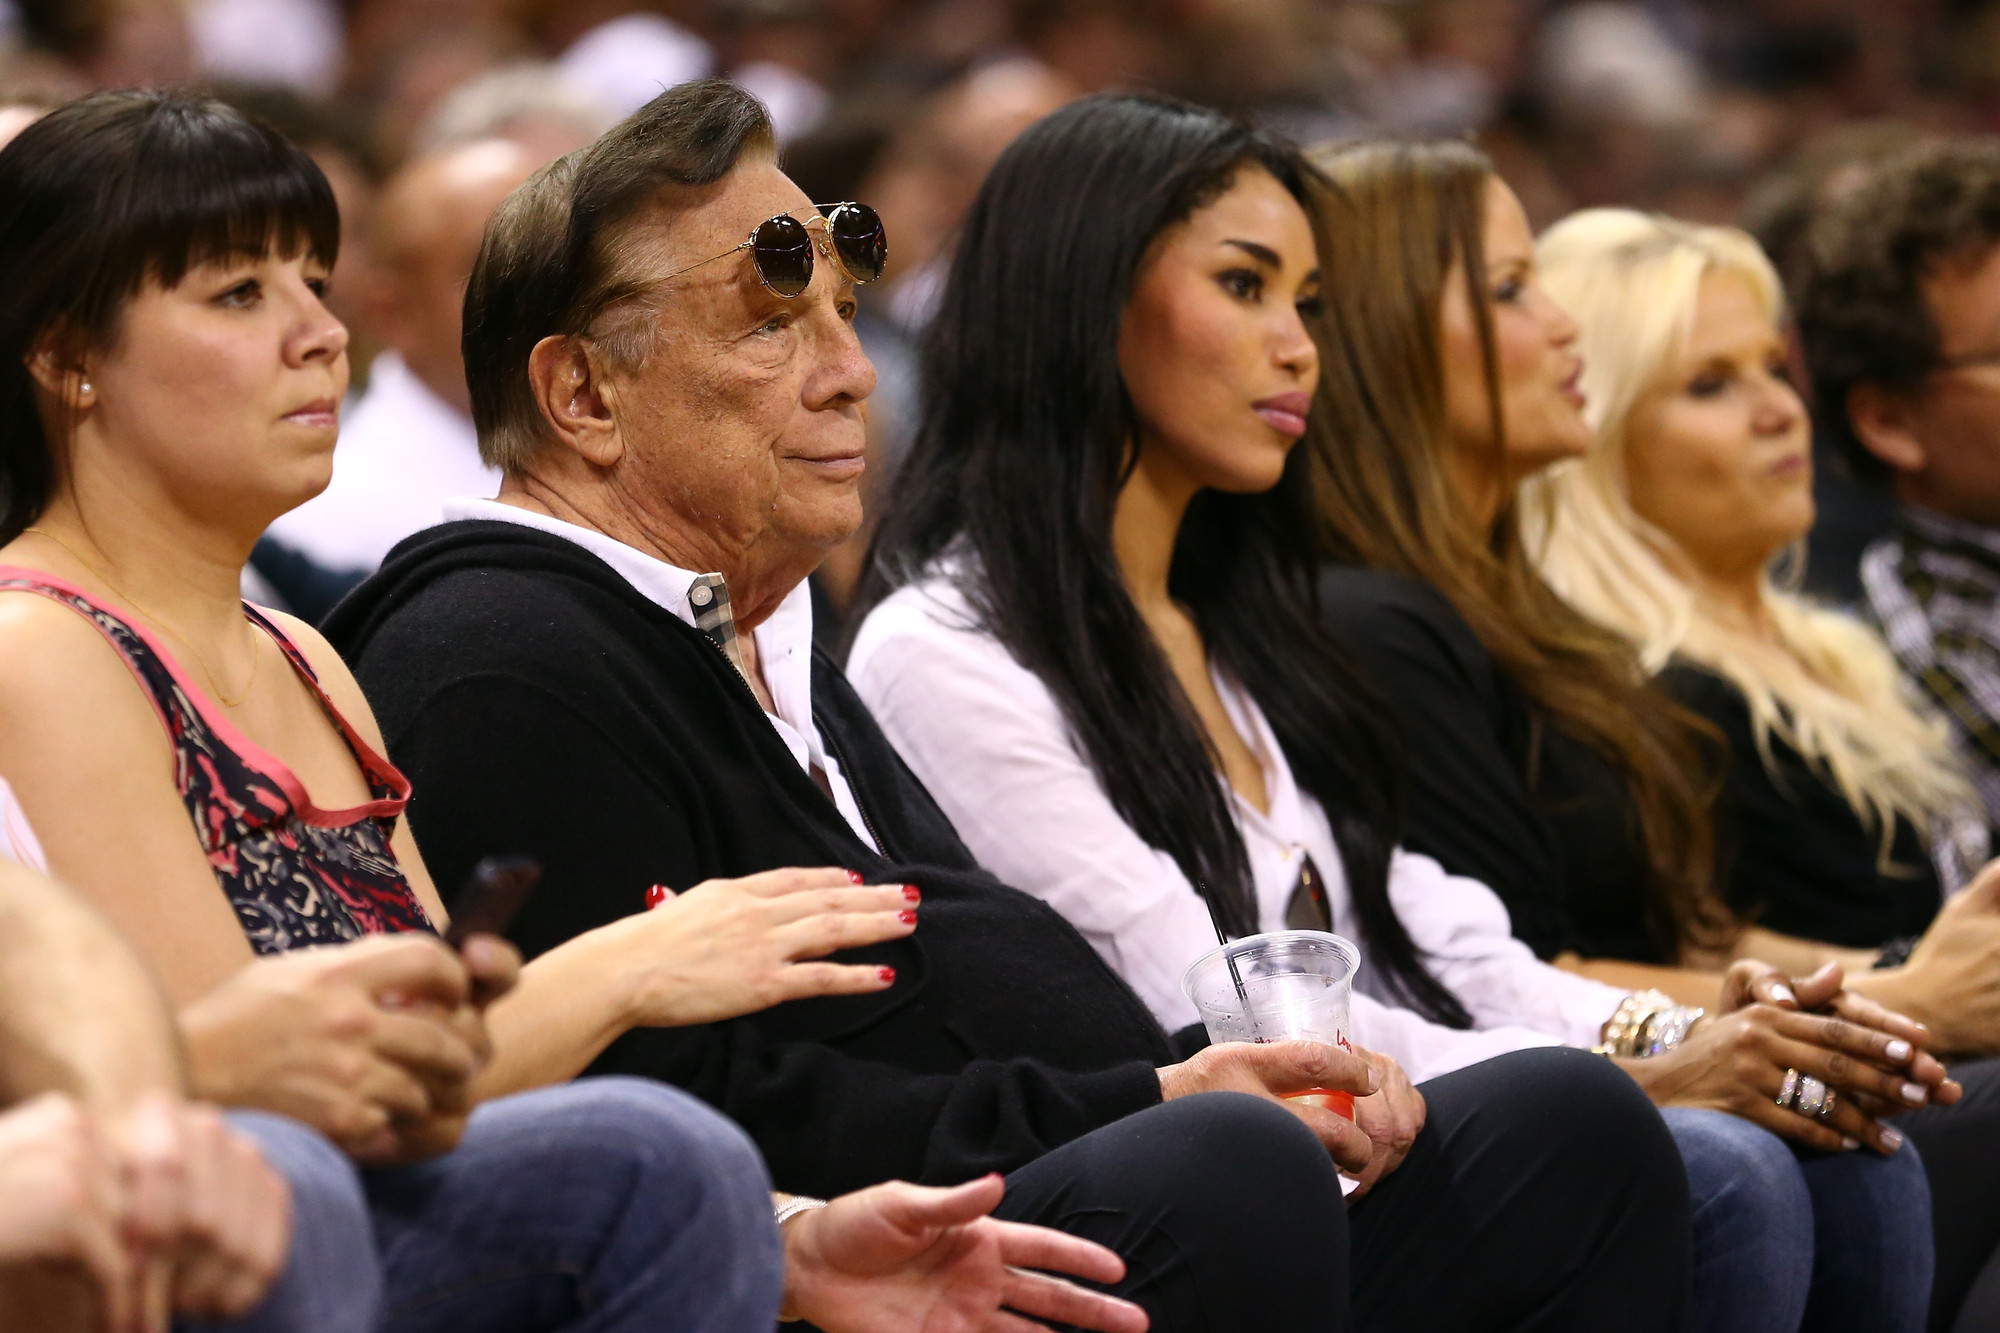 Report: Sterling Will Transfer His Share of Clippers to Wife and She'll Sell Team